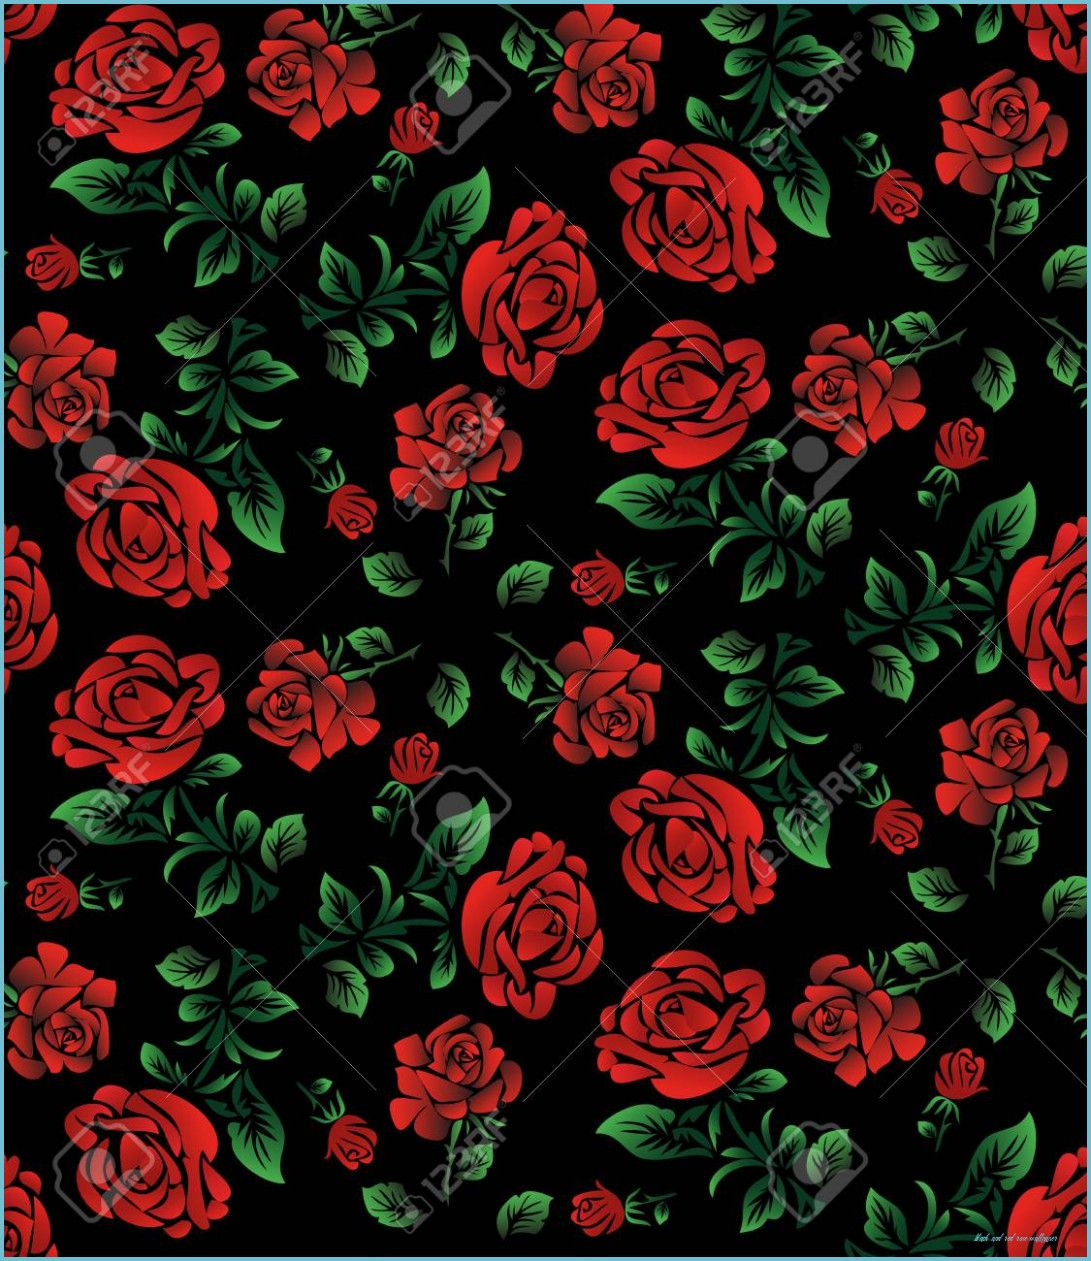 8 Black And Red Rose Wallpaper That Had Gone Way Too Far Black And Red Rose Wallpaper Wallpaper Iphone Roses Rose Wallpaper Red Roses Wallpaper